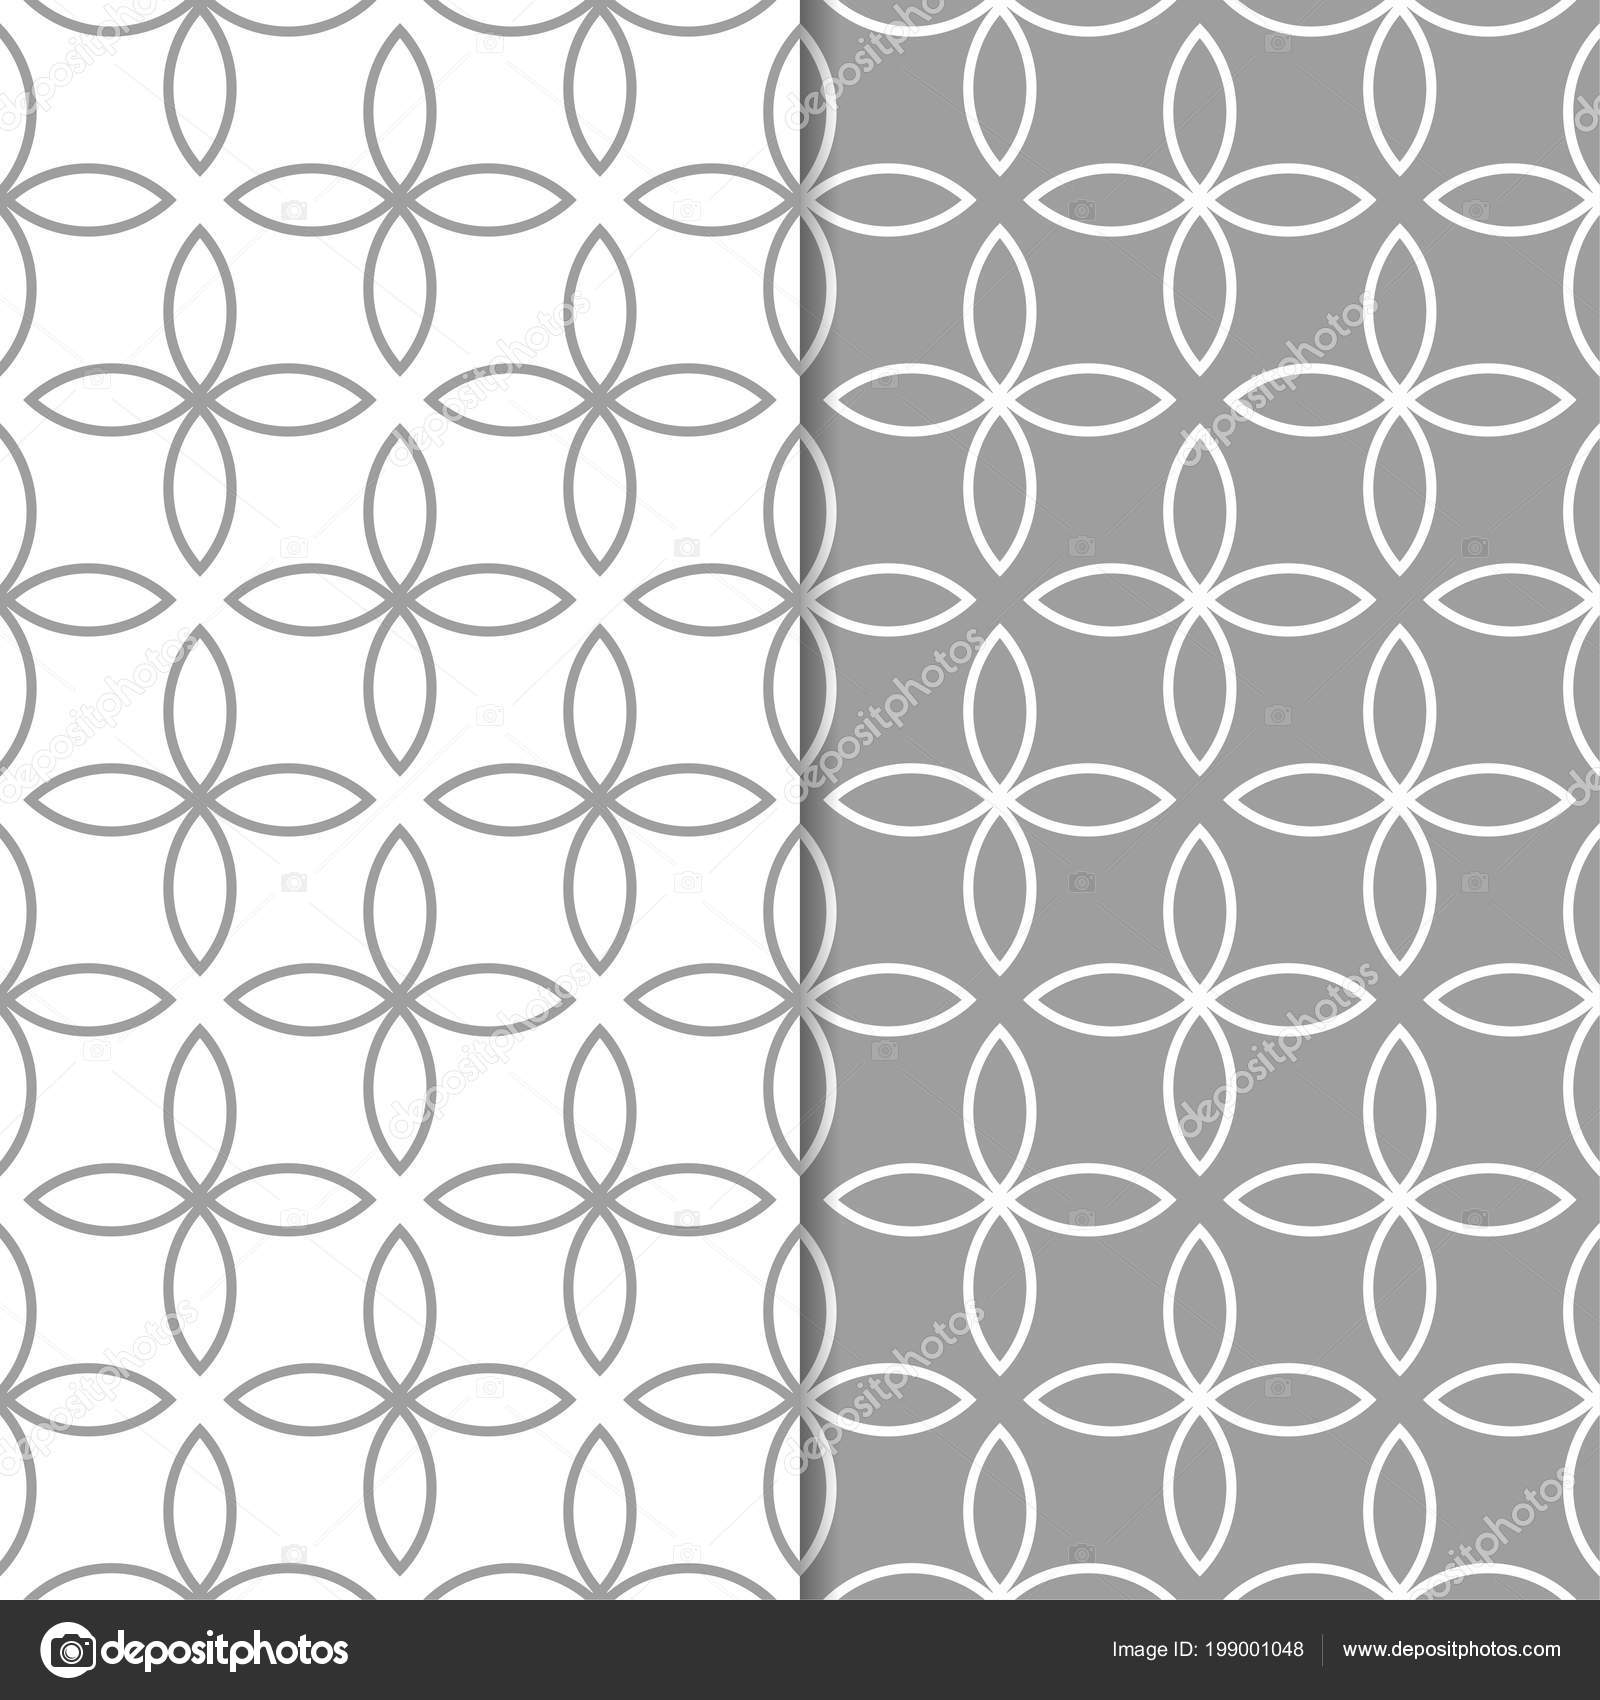 Gray White Geometric Set Seamless Patterns Web Textile Wallpapers Stock